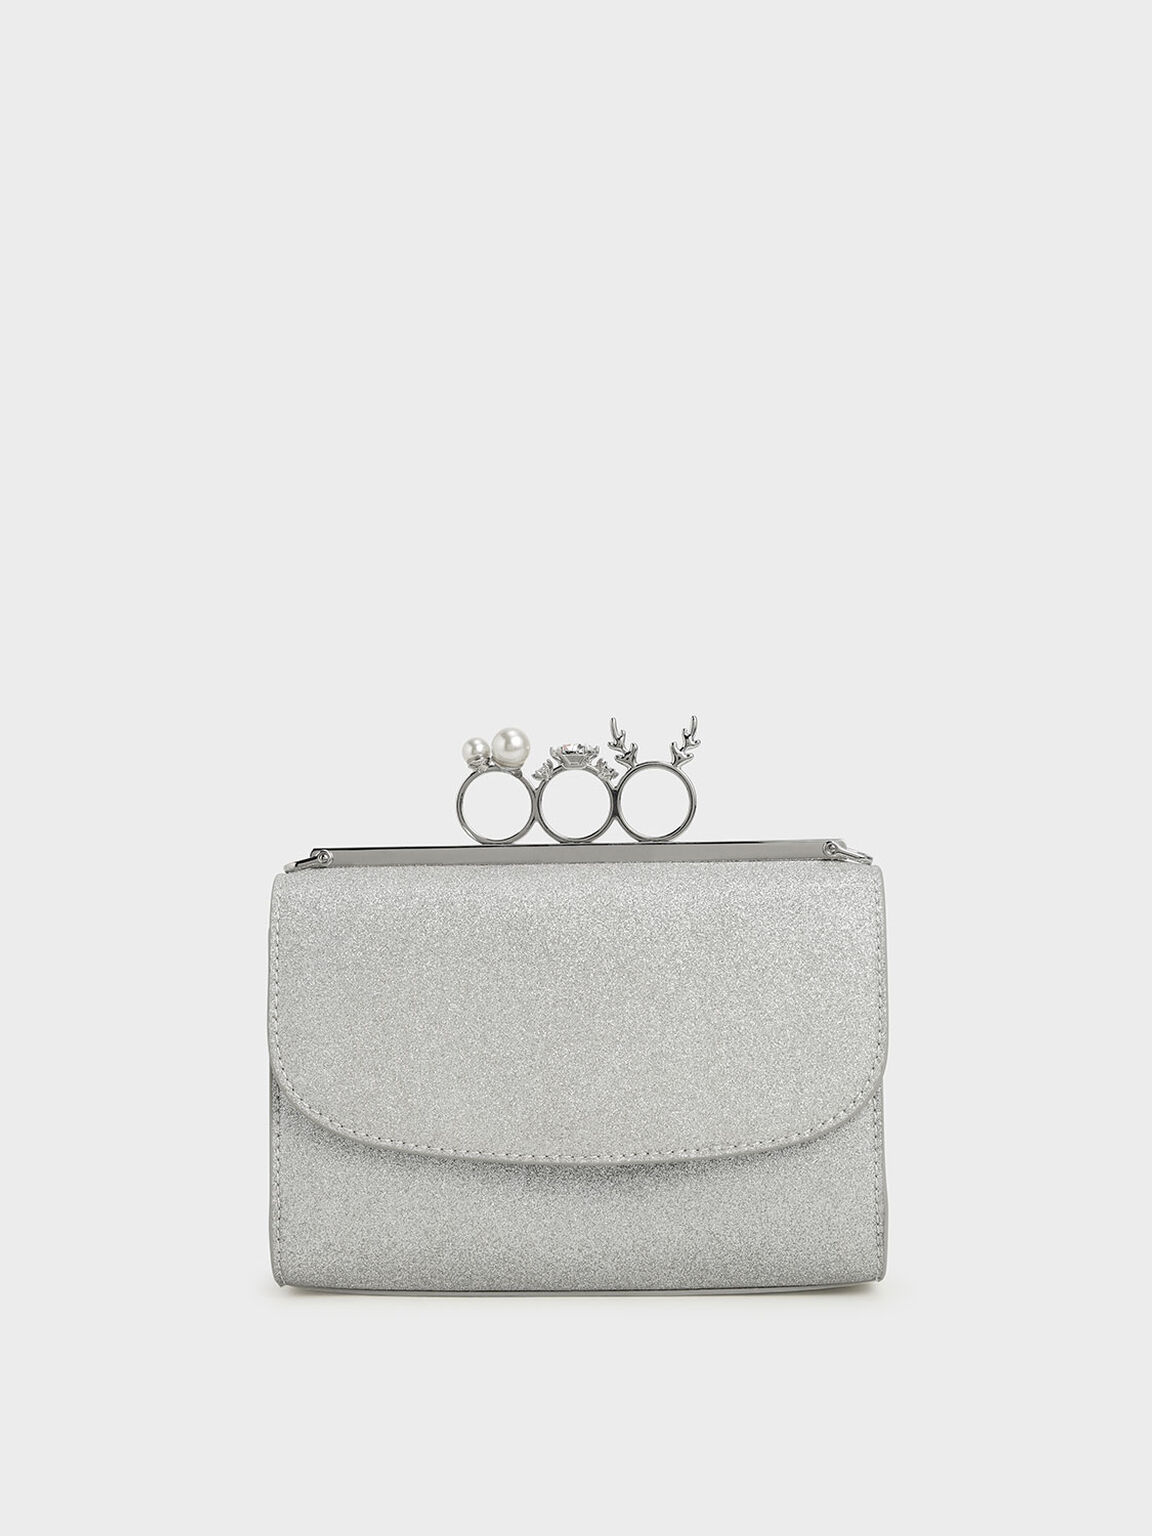 Glittered Knuckle-Ring Clutch, Silver, hi-res